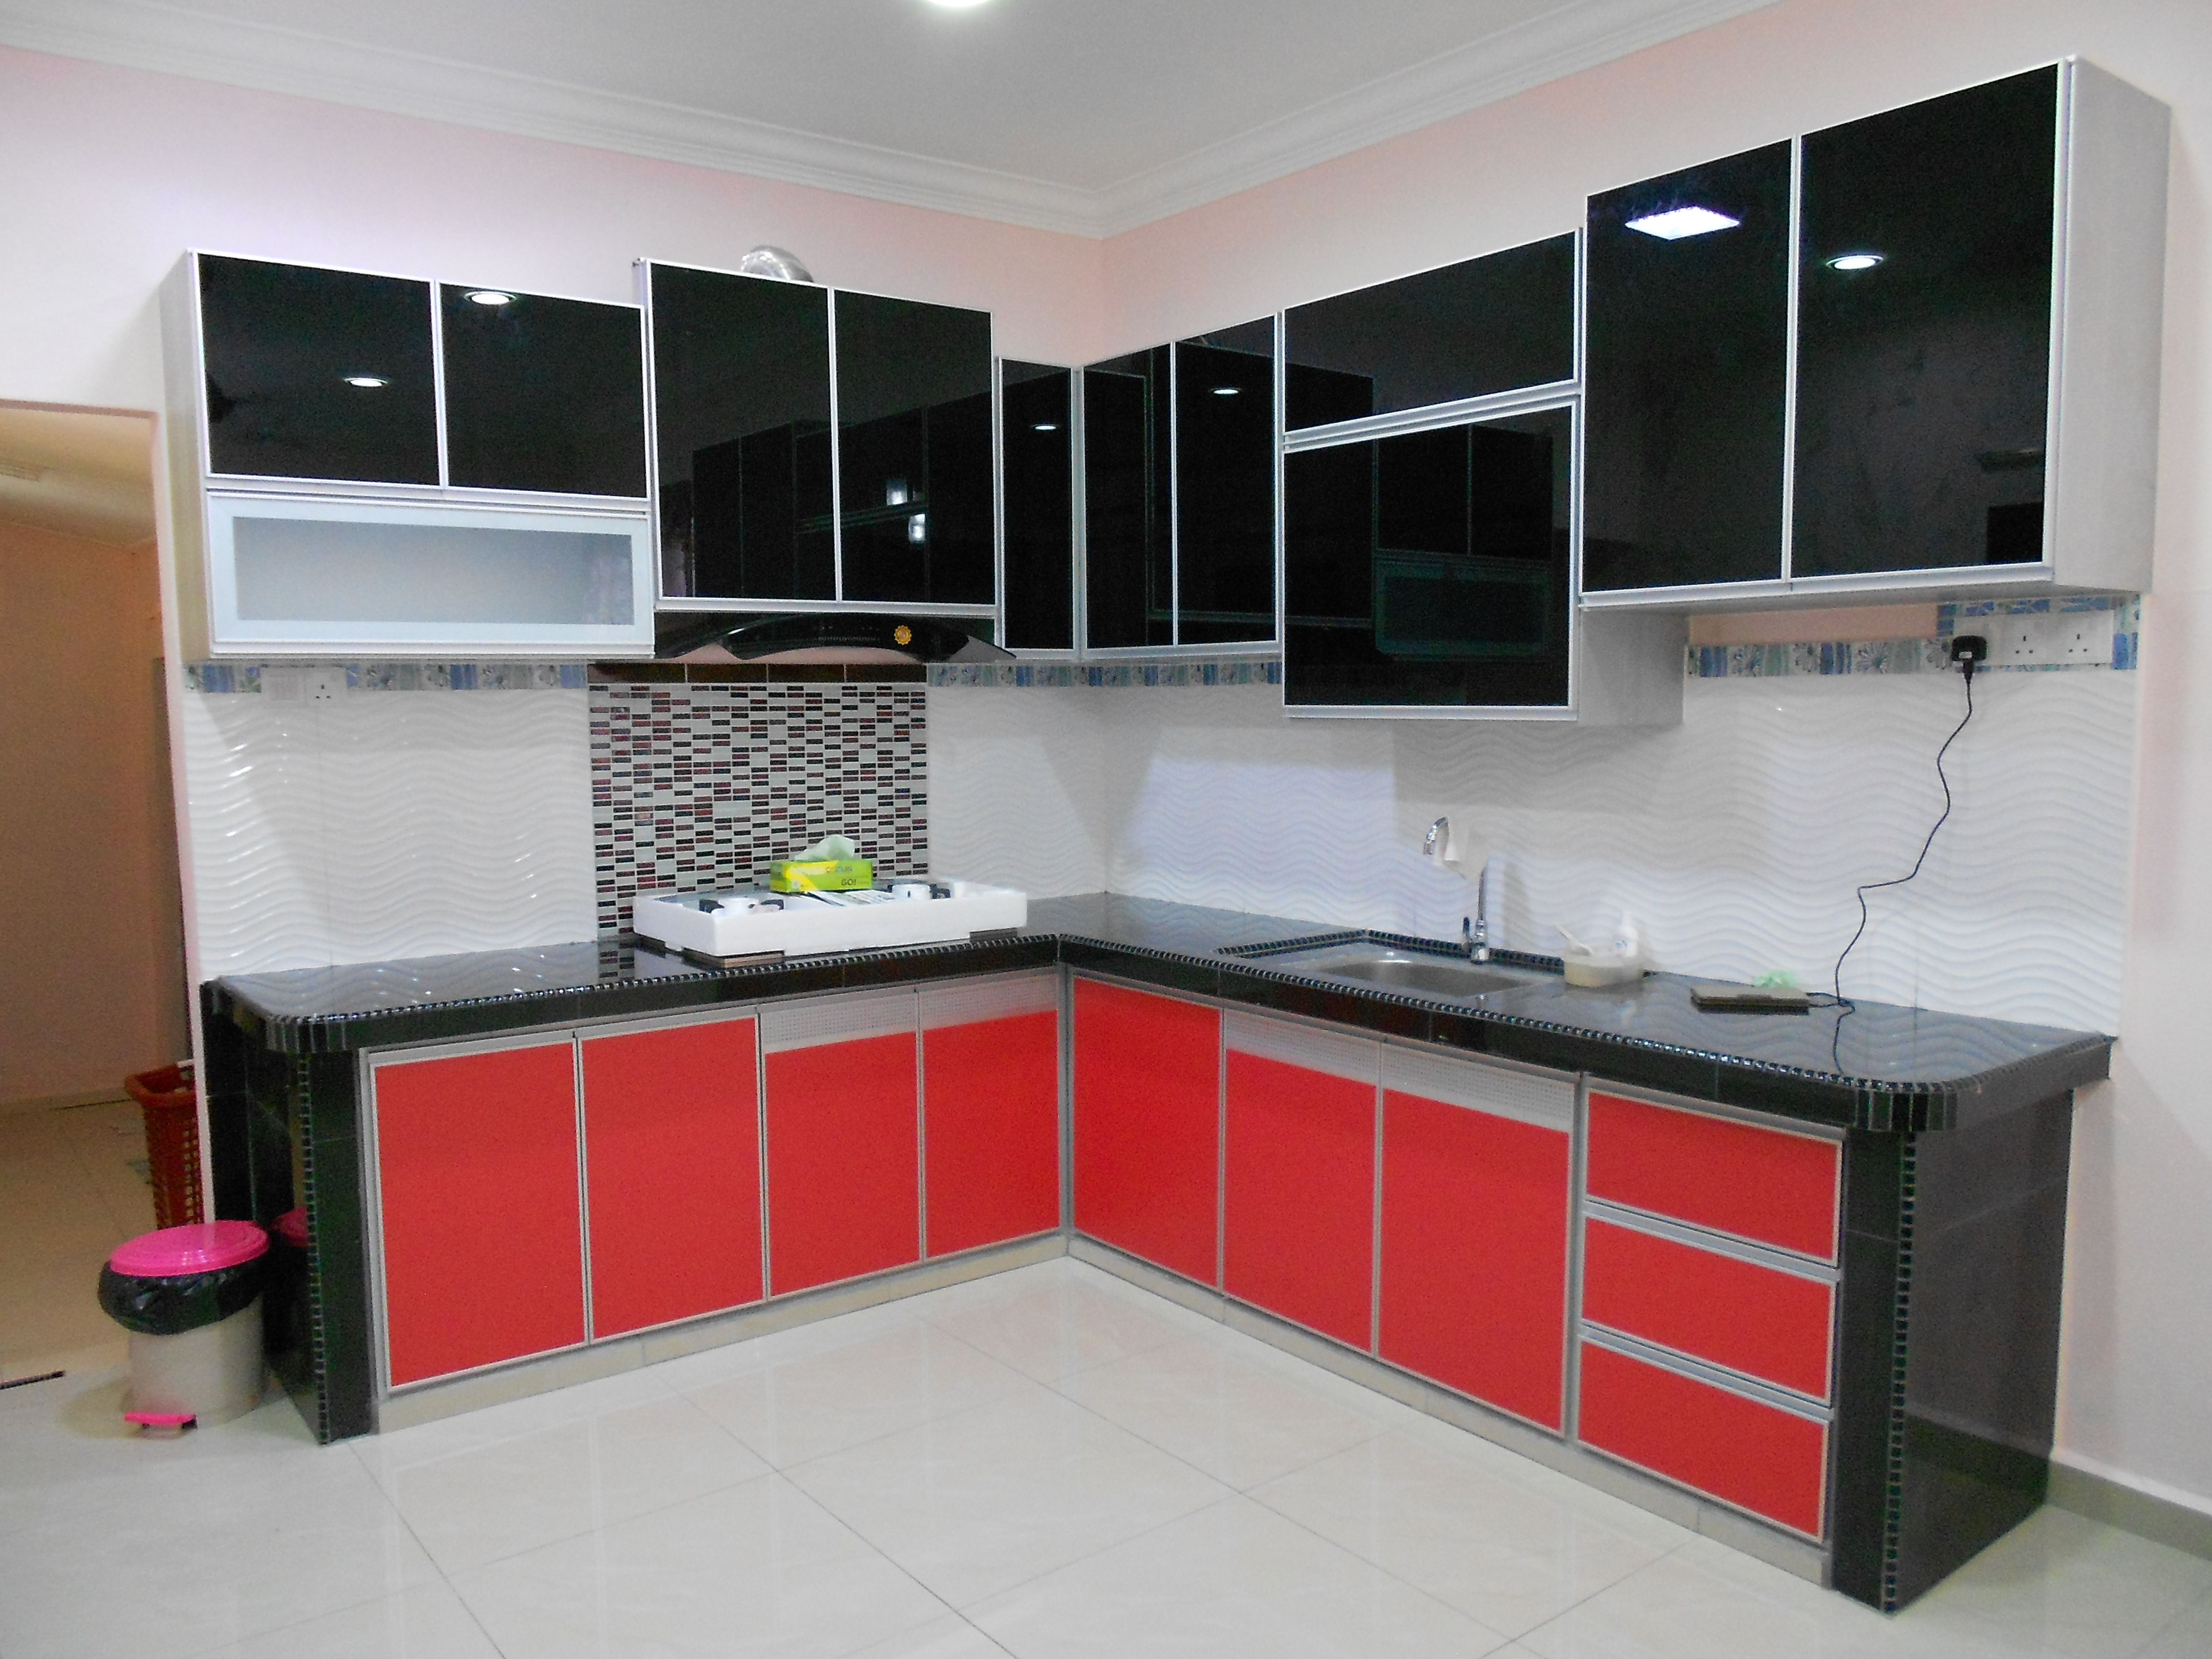 Find This Pin And More On Kabinet Dapur Hitam Merah Aluminium Sepenuhnya By Yazidjembi